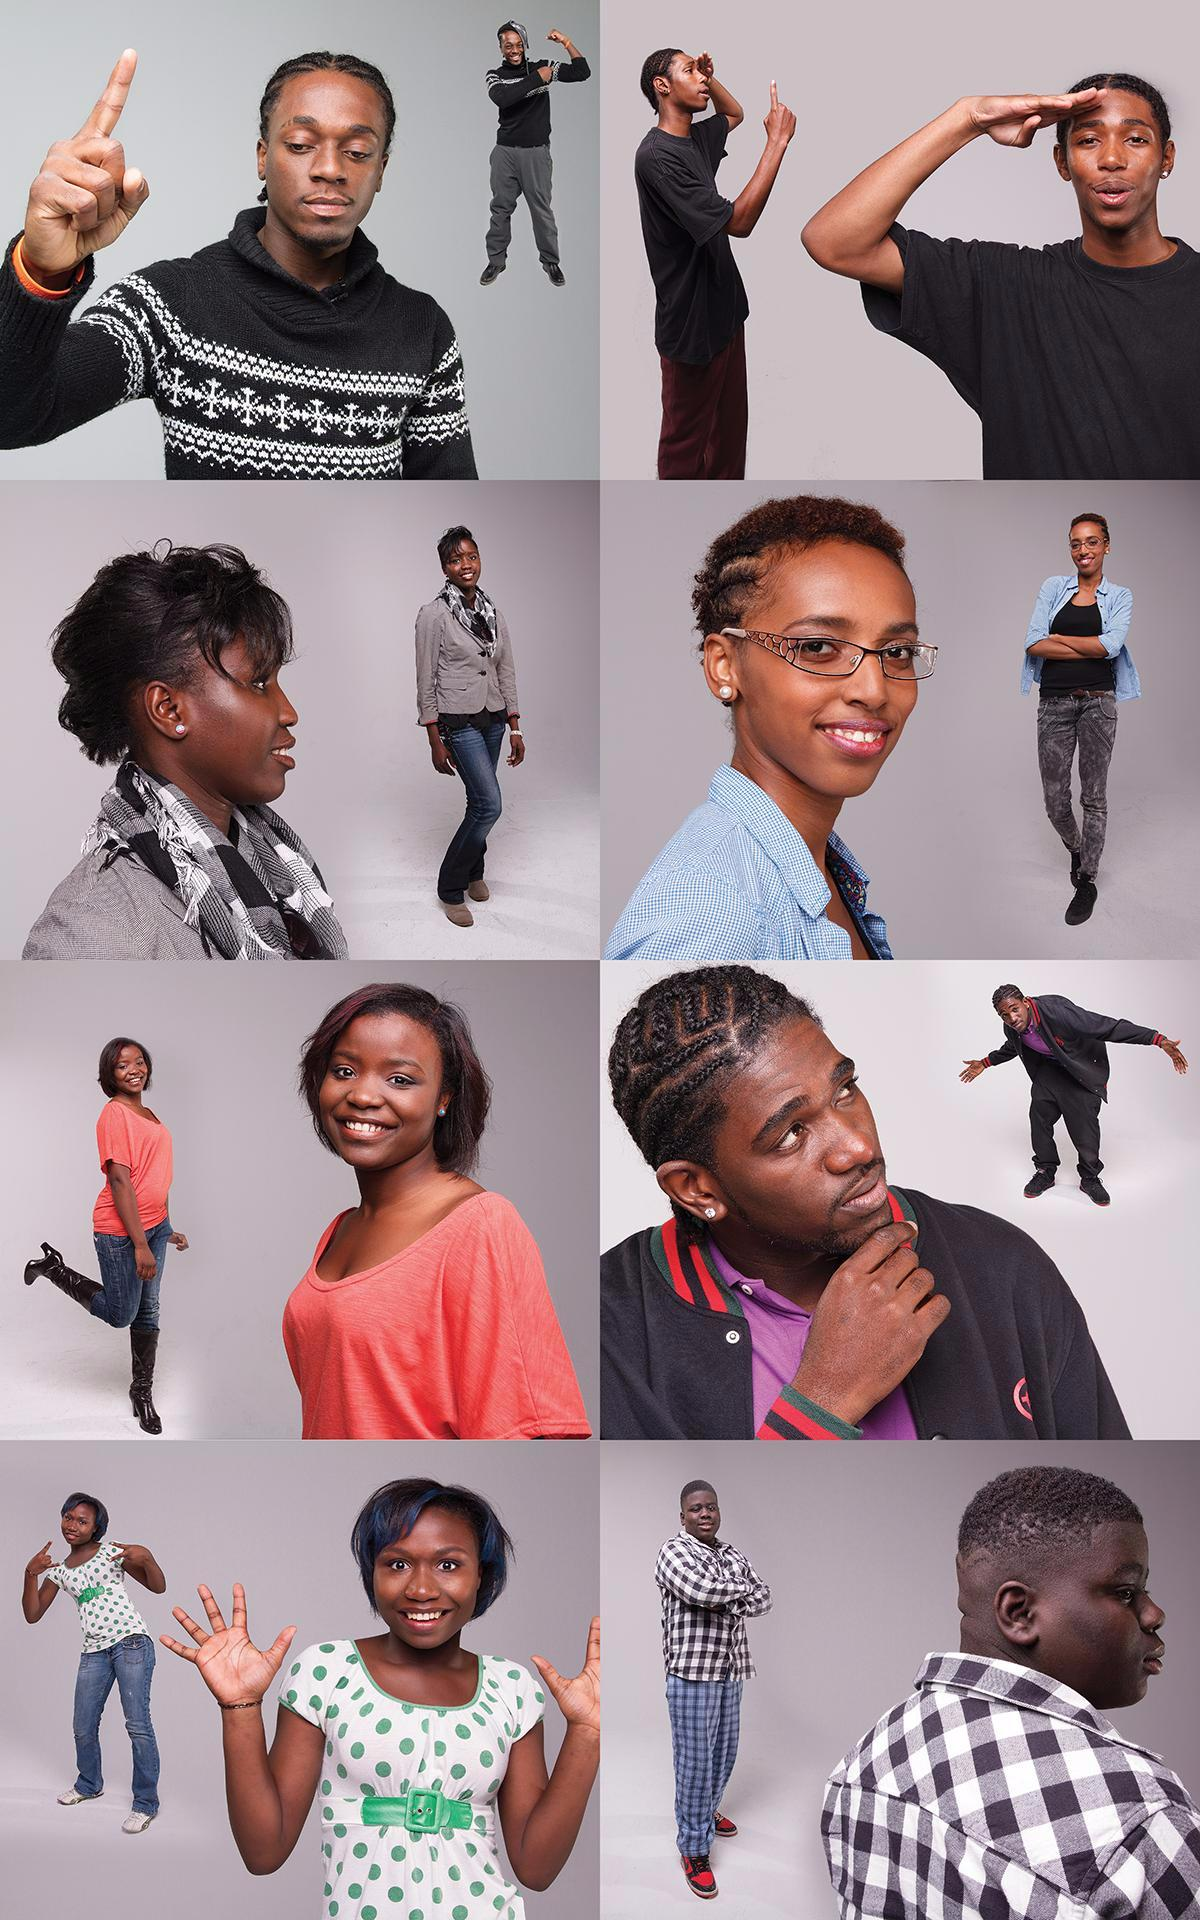 At the same time, the youth panel were also photographed by Toronto-based celebrity portrait photographer, Isa Ransome. These sets of photographs were then printed, framed and exhibited in the evening during the youth panel.